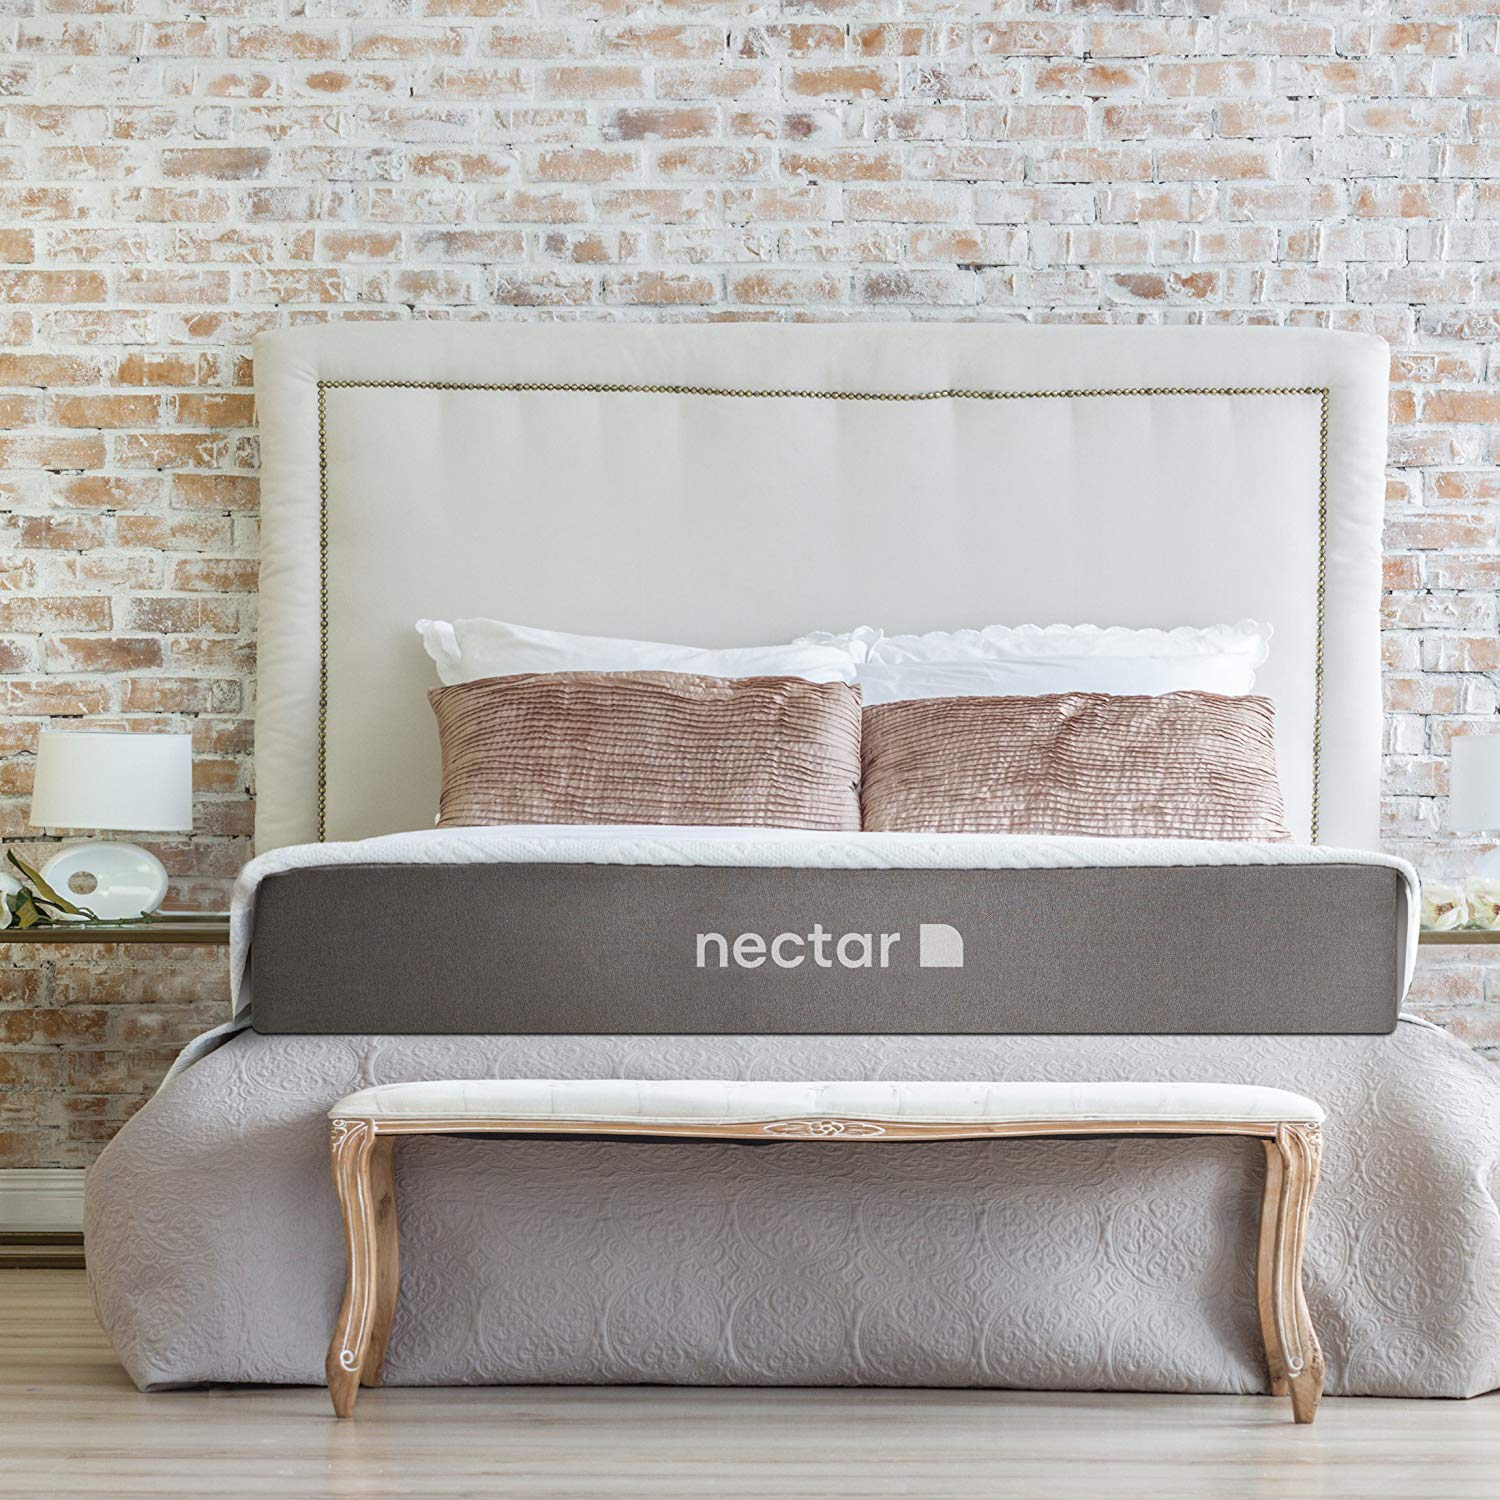 Beautiful nectar mattress